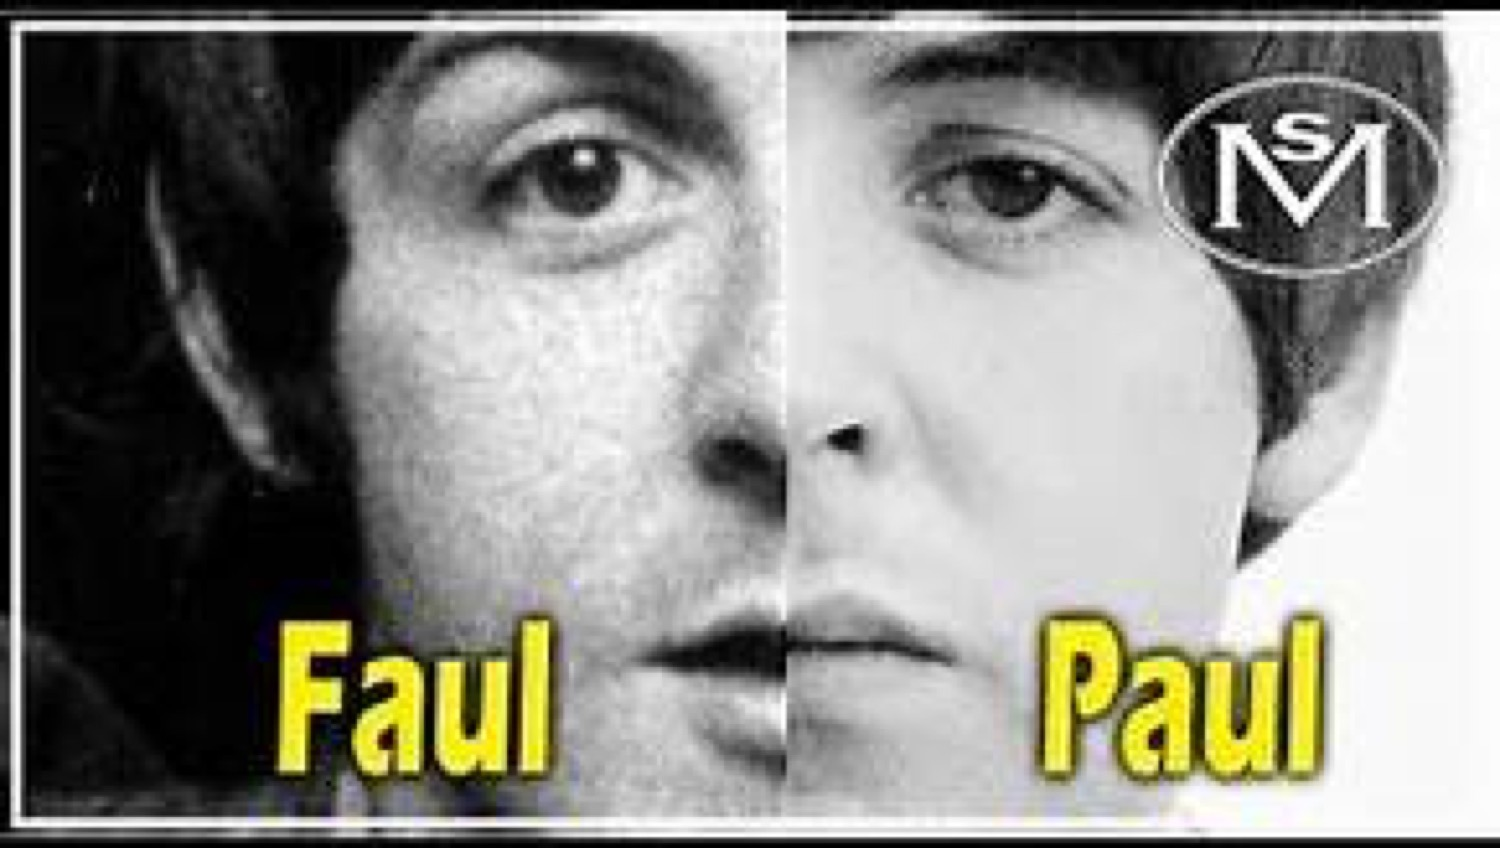 BILLYPEPPER_Faul-and-Paul.jpg